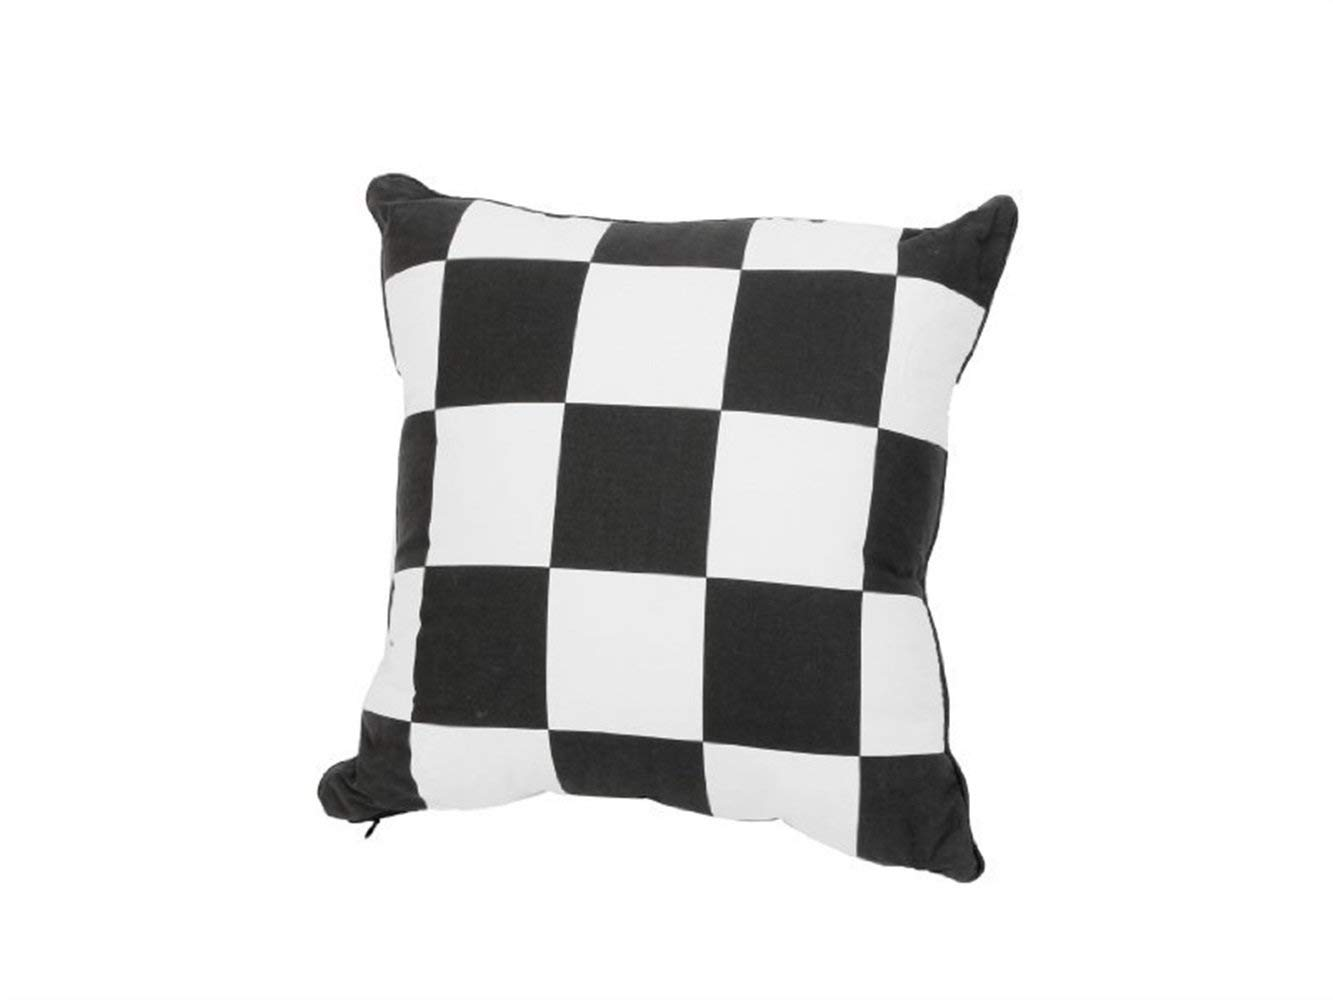 Yuchoi Perfectly Shaped Fashion Black White Trellis Pattern Lumbar Back Support Cushion Pillow for Car